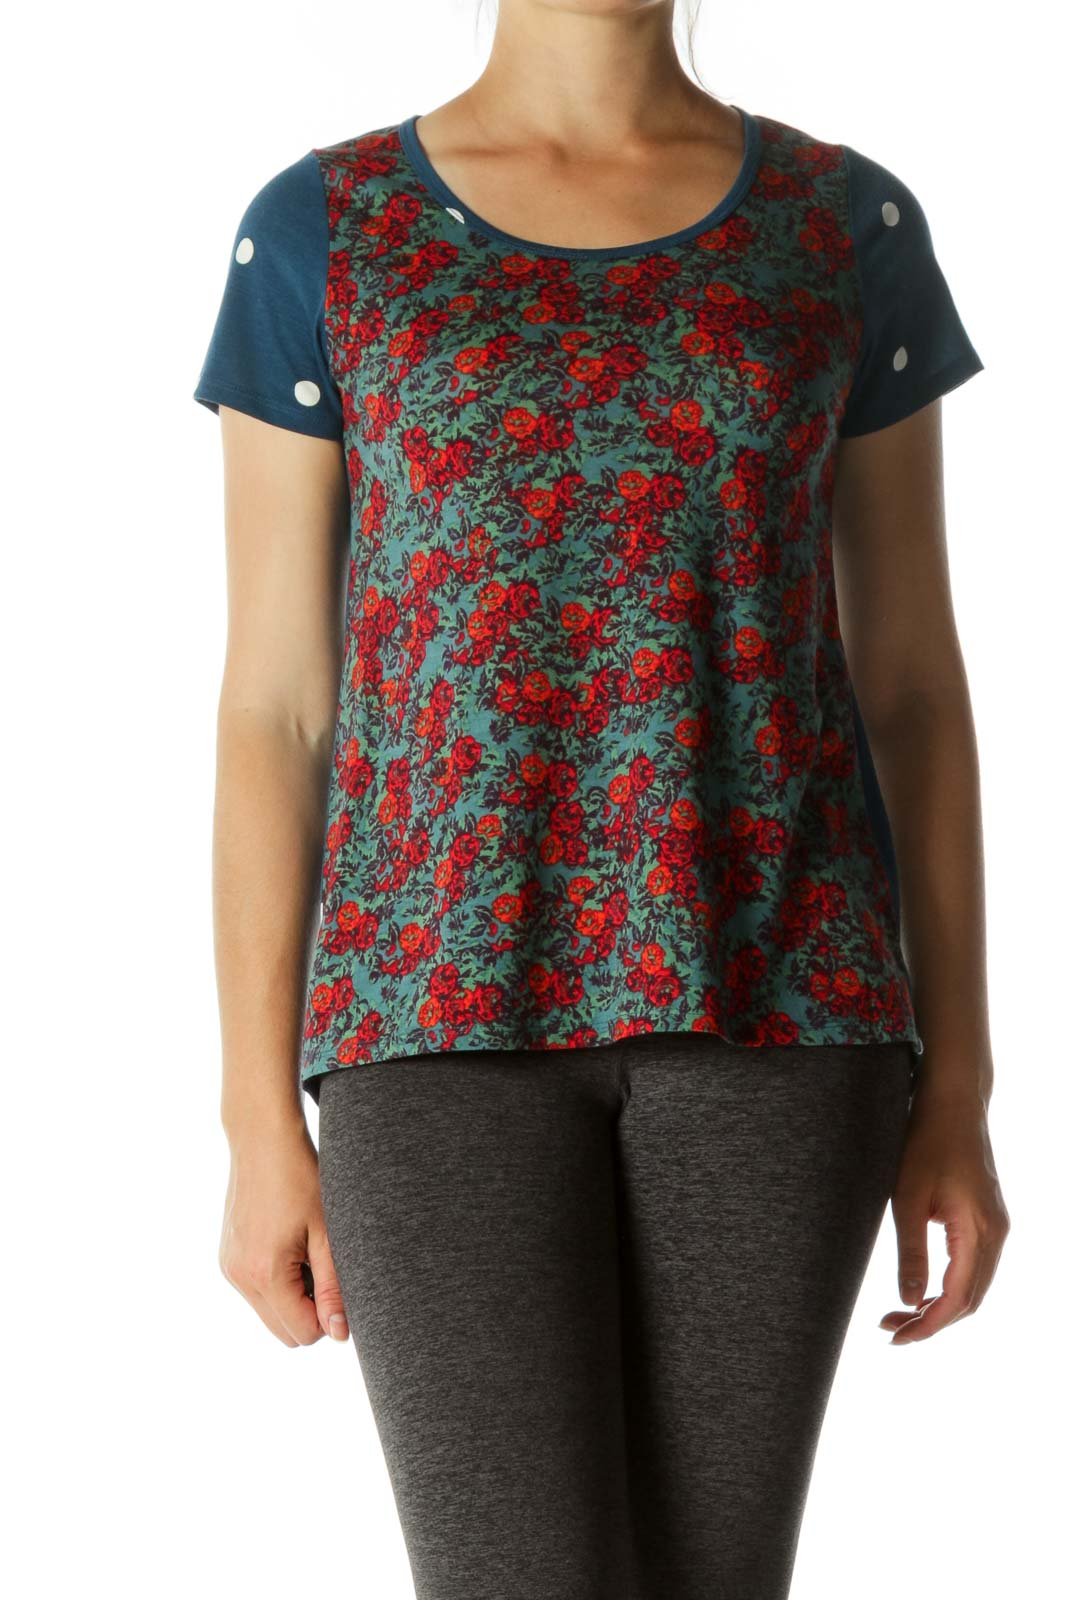 Red Floral & Blue Polka Dots Short Sleeve T-shirt  Front